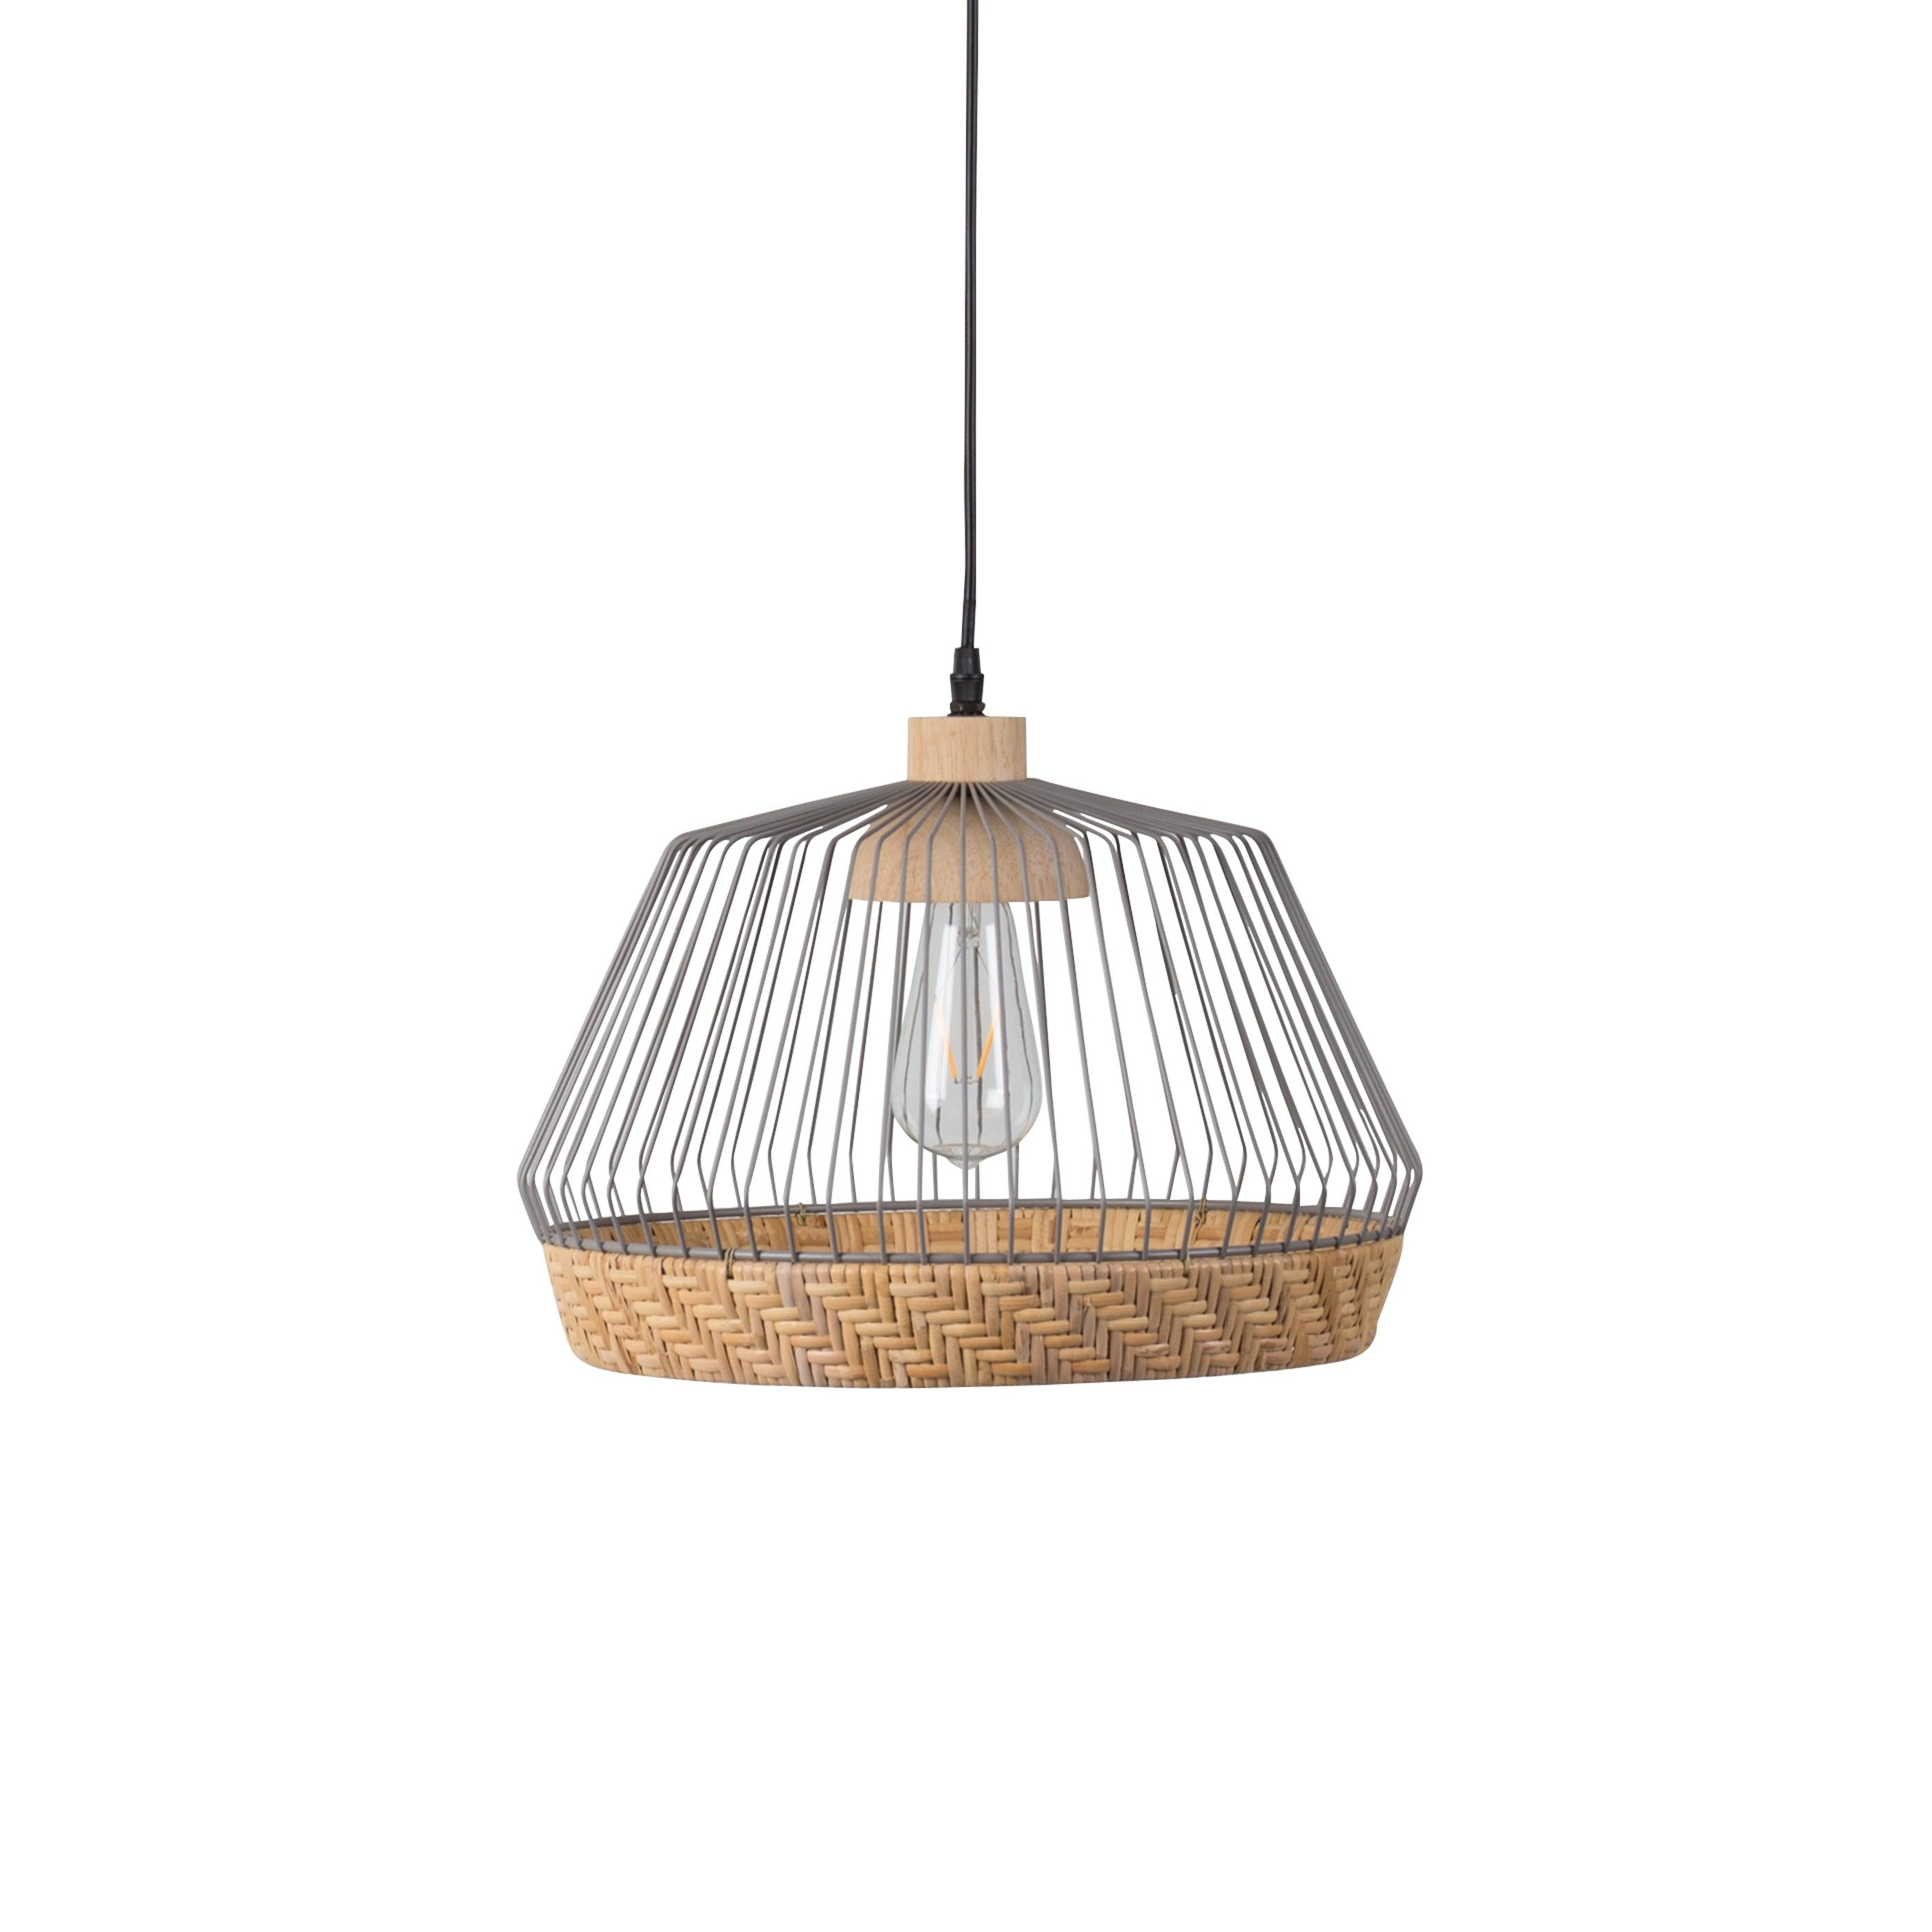 https://static.flinders.nl/media/catalog/product/cache/1/image/9df78eab33525d08d6e5fb8d27136e95/z/u/zuiver-birdy-wide-hanglamp.jpg